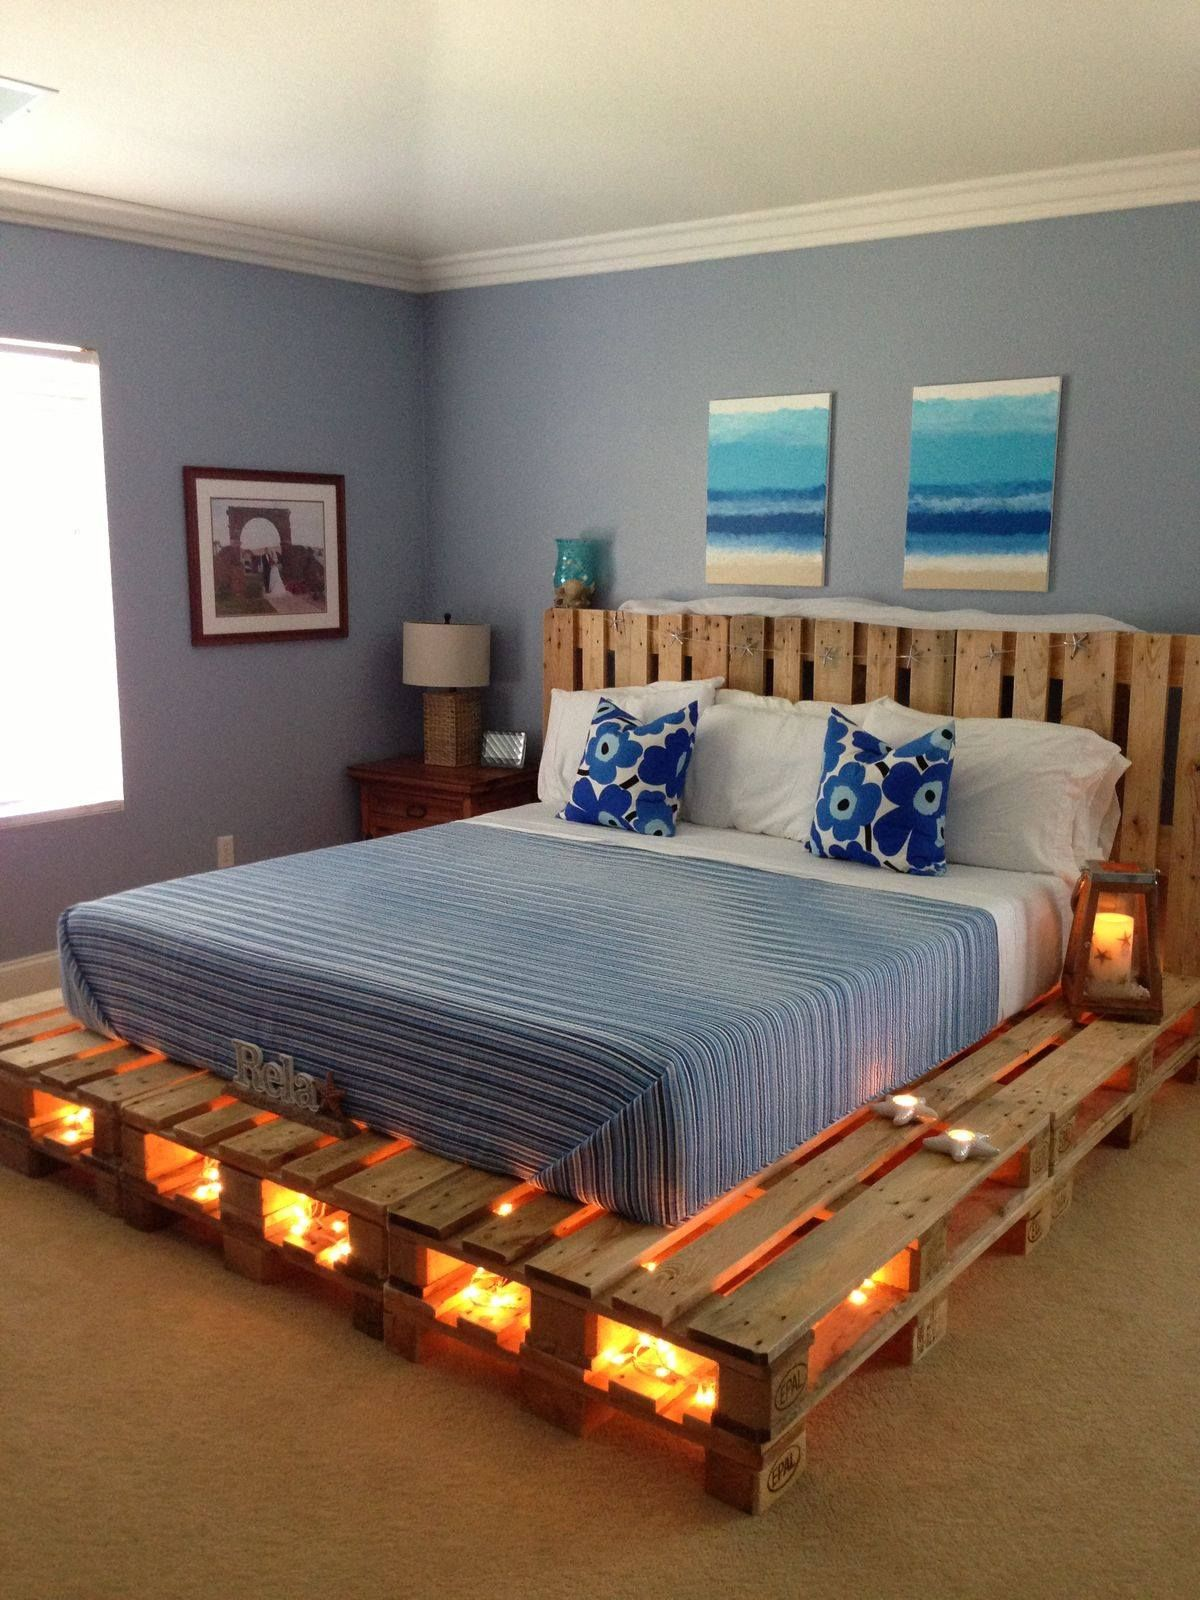 We are big fans of pallet projects at Creativepotting and here are 10 super  cool beds made out of repurposed wooden pallets that you will love to sleep  on.